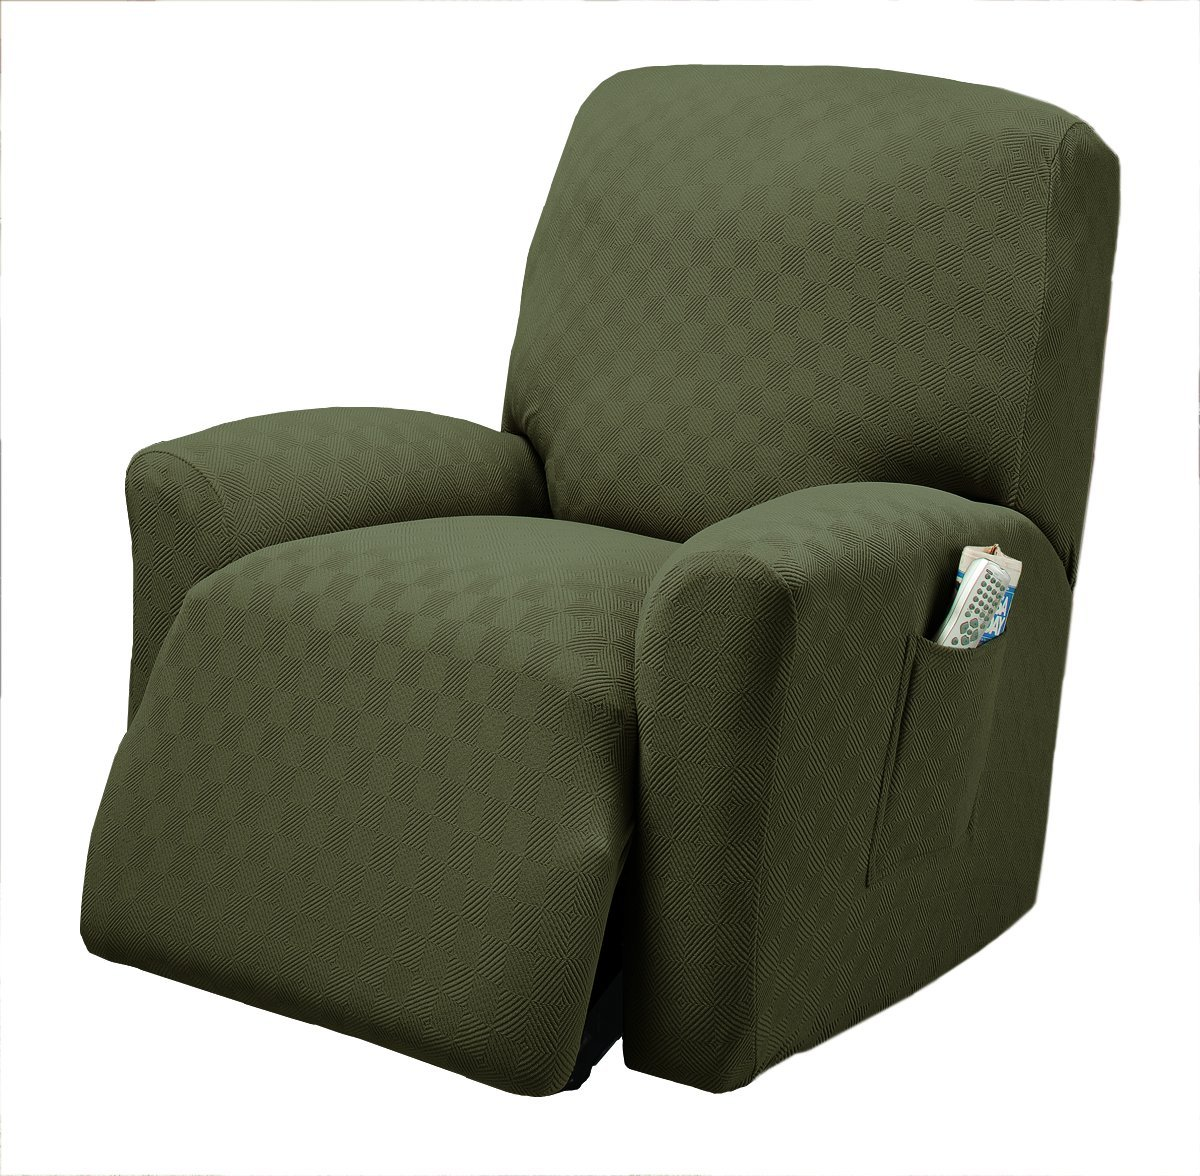 Exceptionnel Amazon.com: Stretch Sensations Newport Recliner Stretch Slipcover, Wheat:  Home U0026 Kitchen